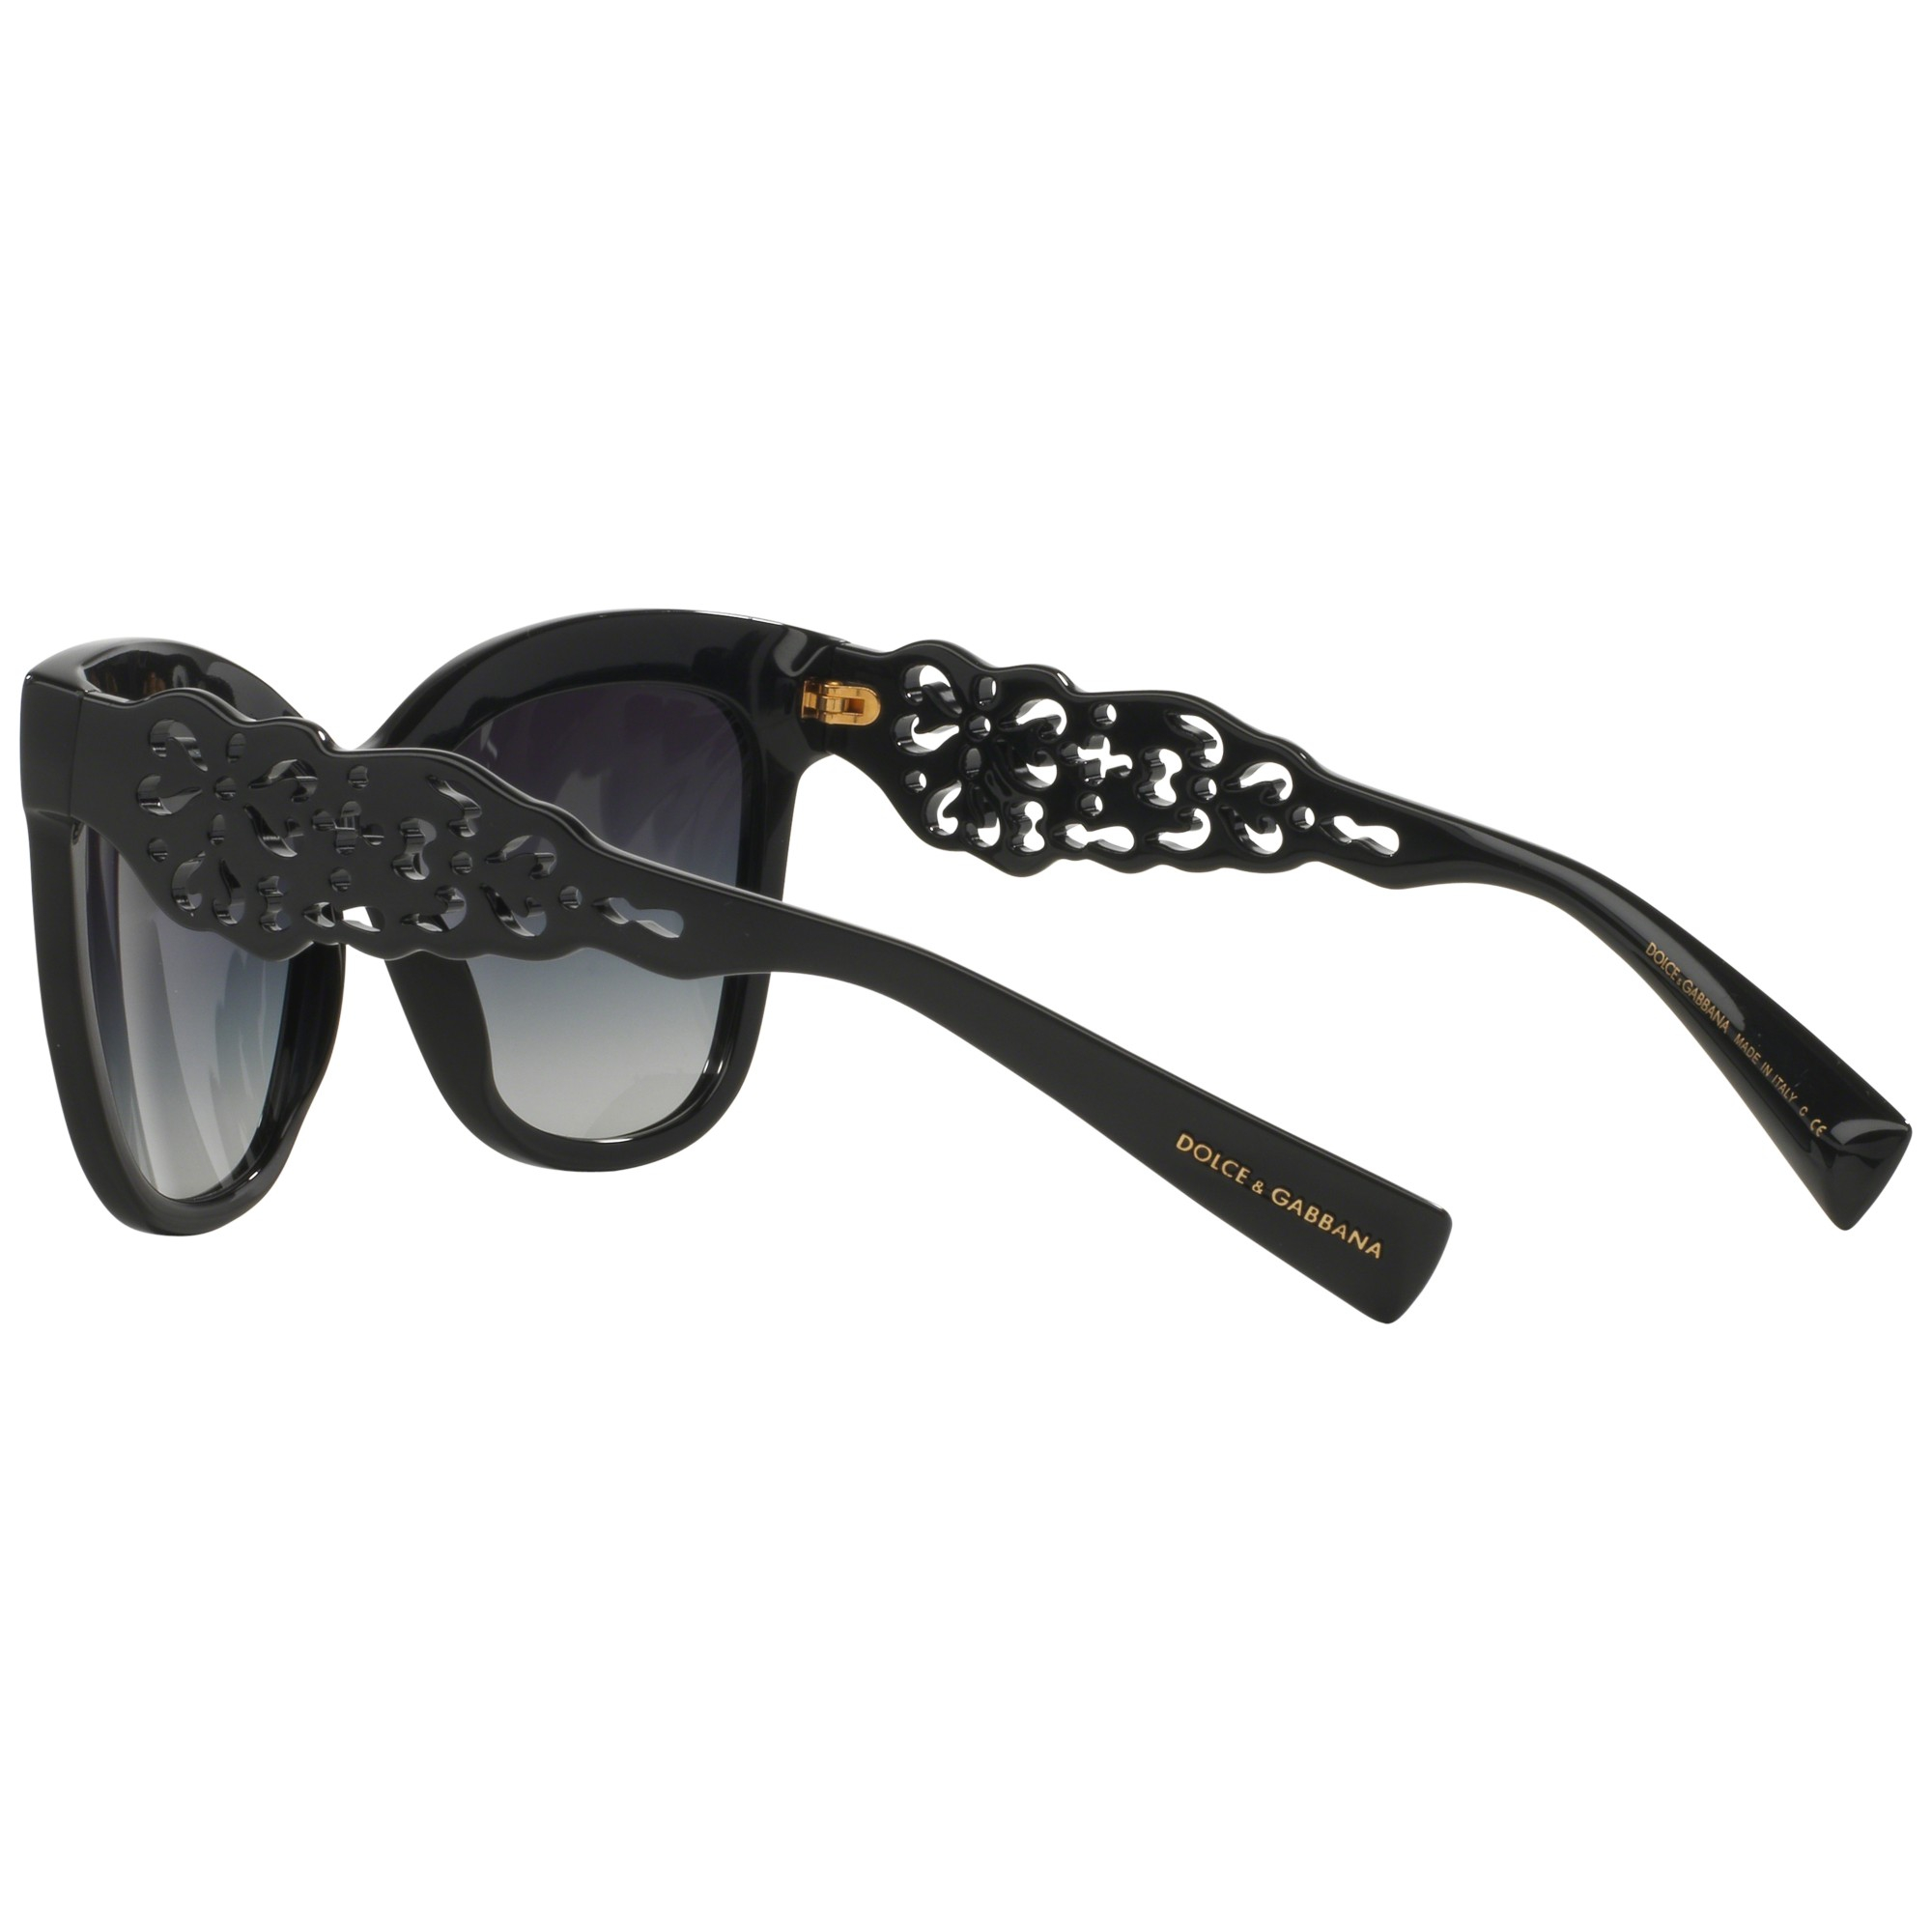 d3315c6b044 Dolce And Gabbana Black Square Sunglasses